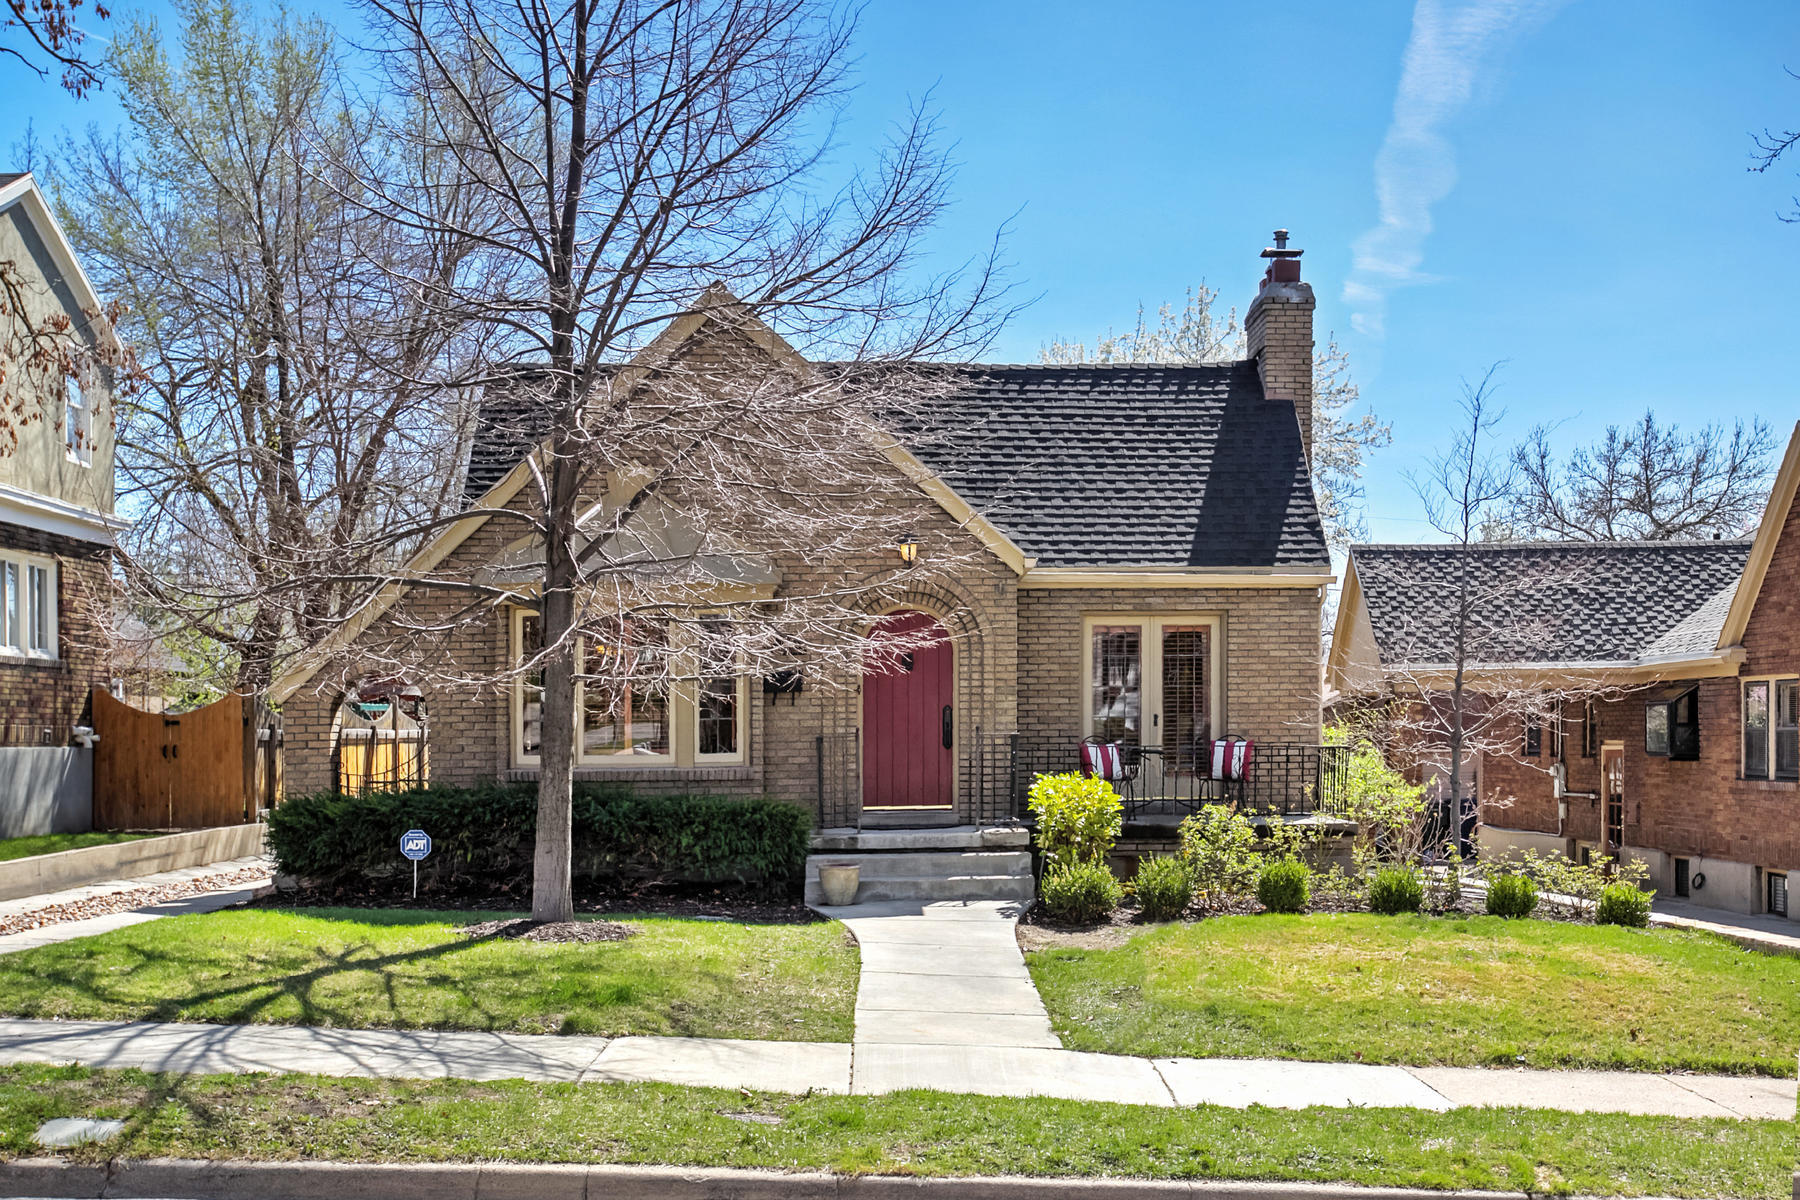 Villa per Vendita alle ore Lovely on Laird 1412 E Laird Ave Salt Lake City, Utah, 84105 Stati Uniti